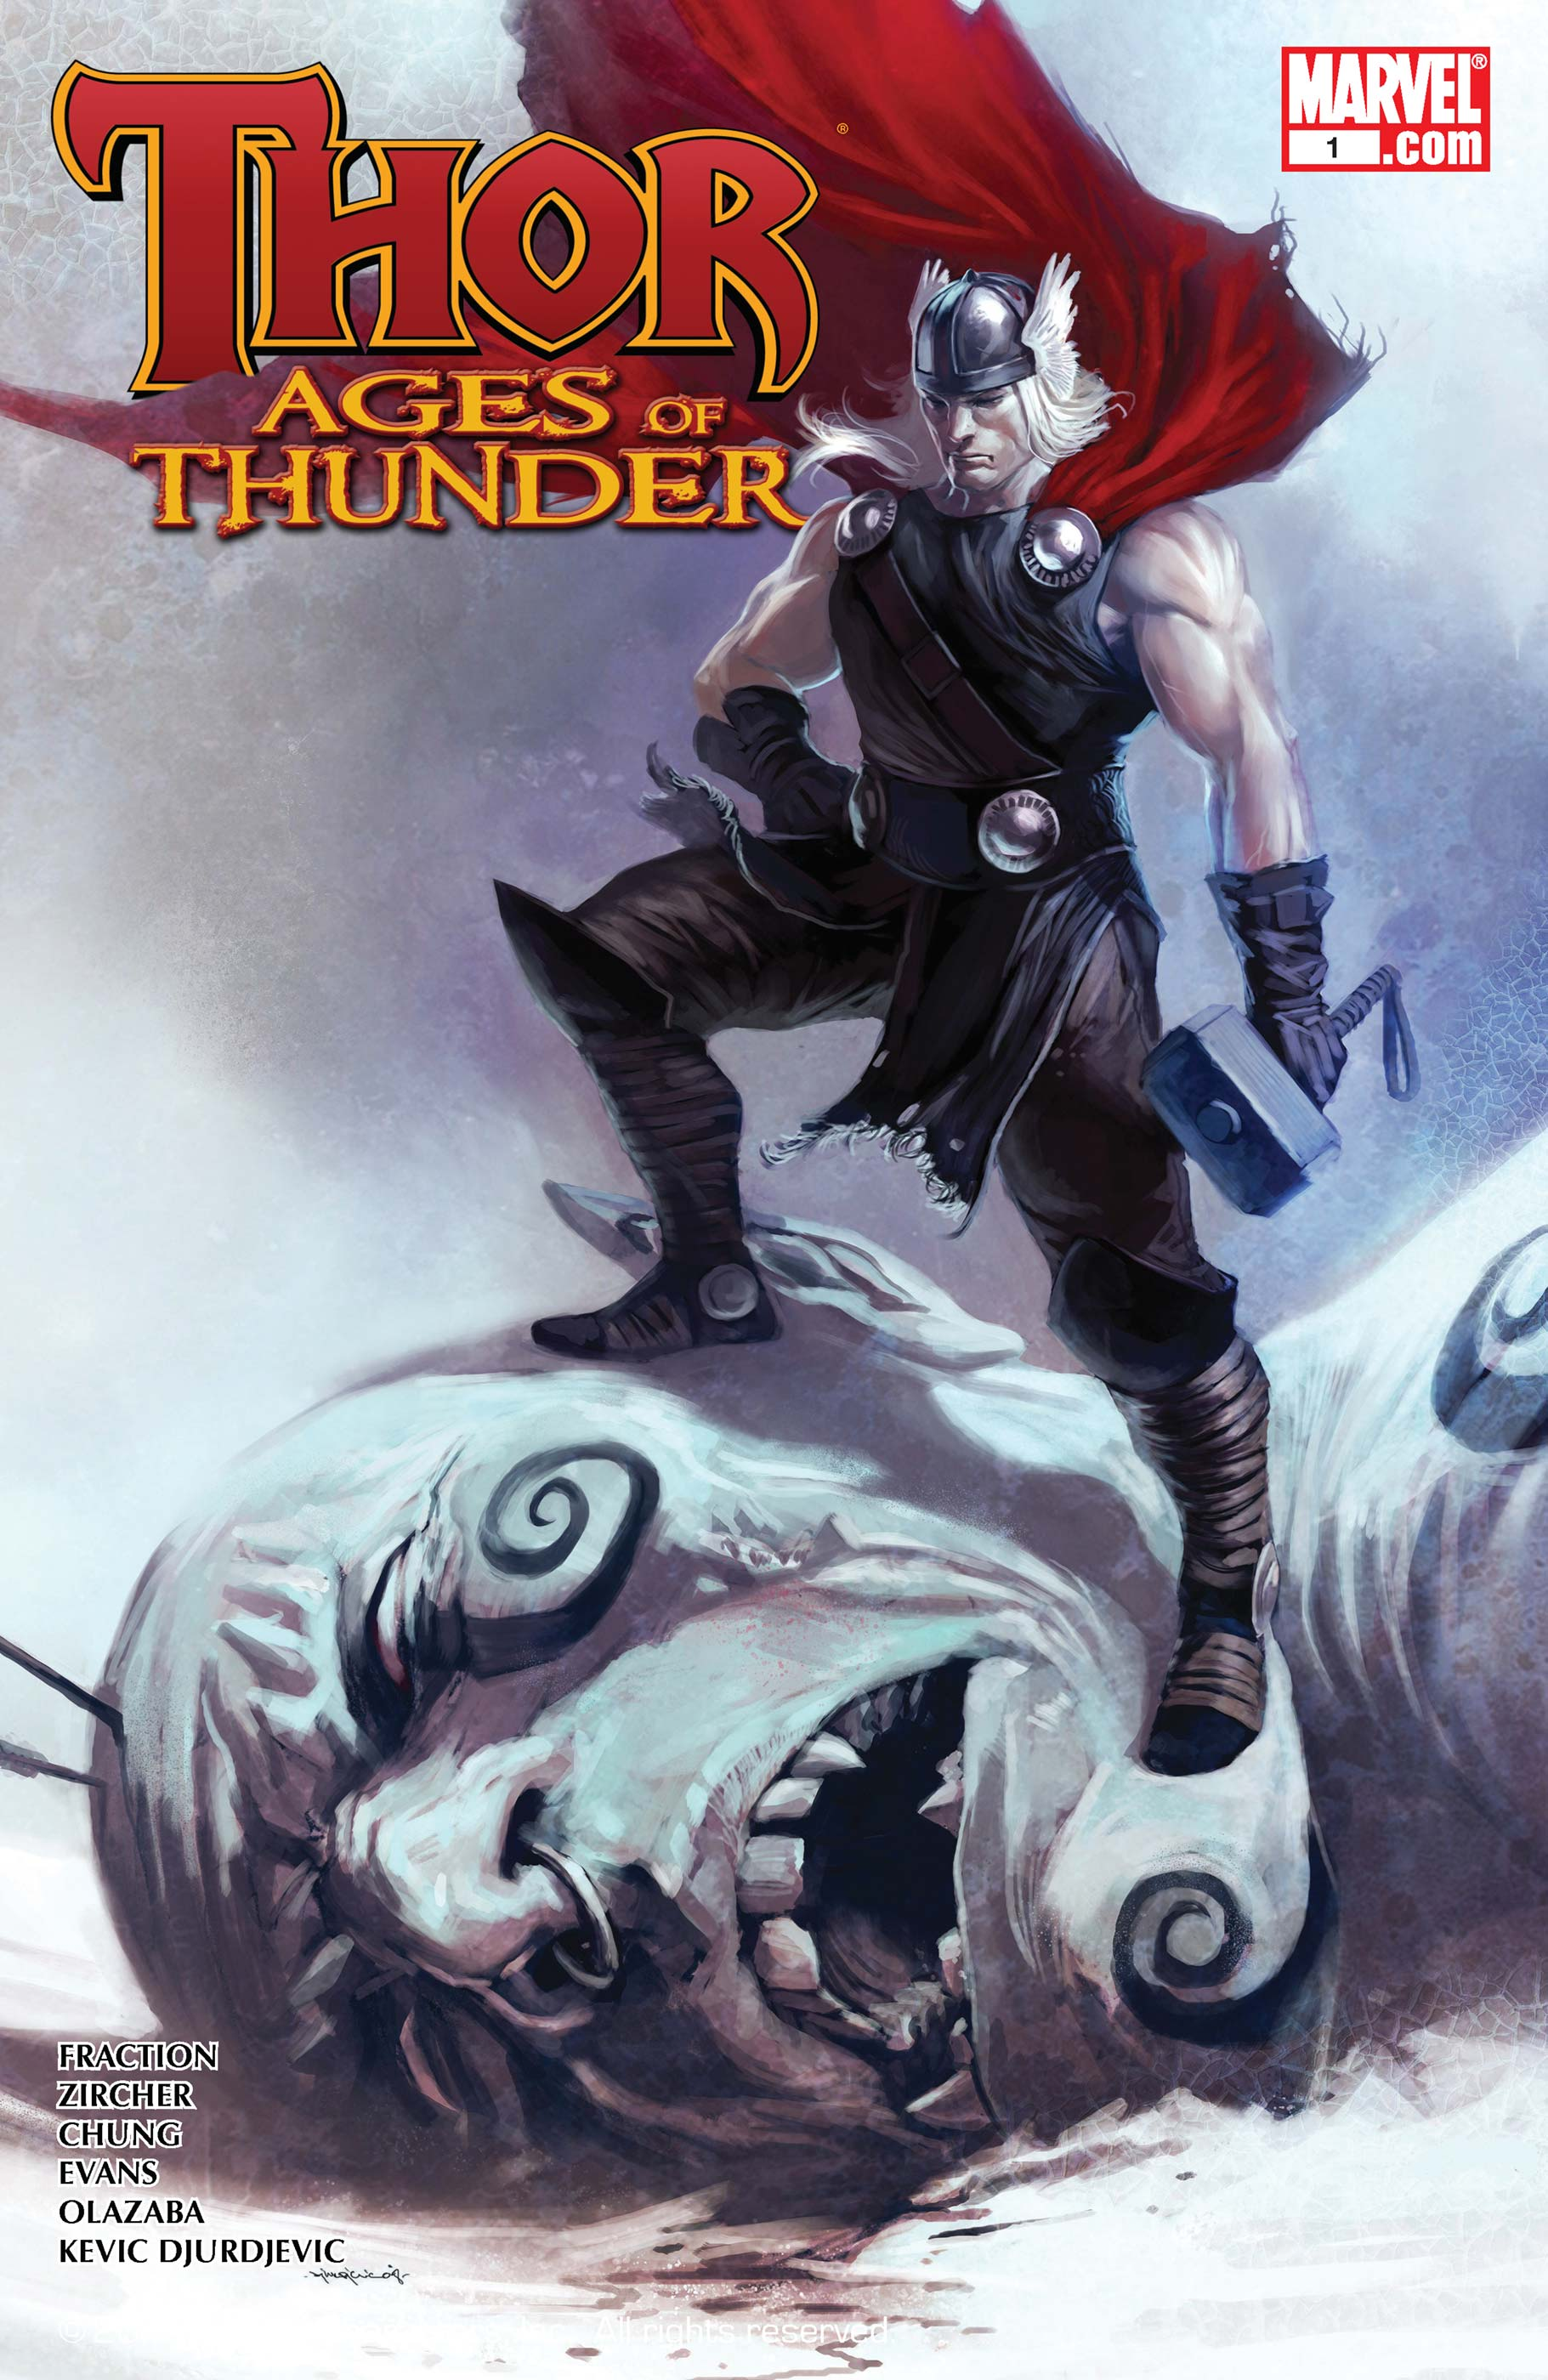 Thor: Ages of Thunder (2008) #1